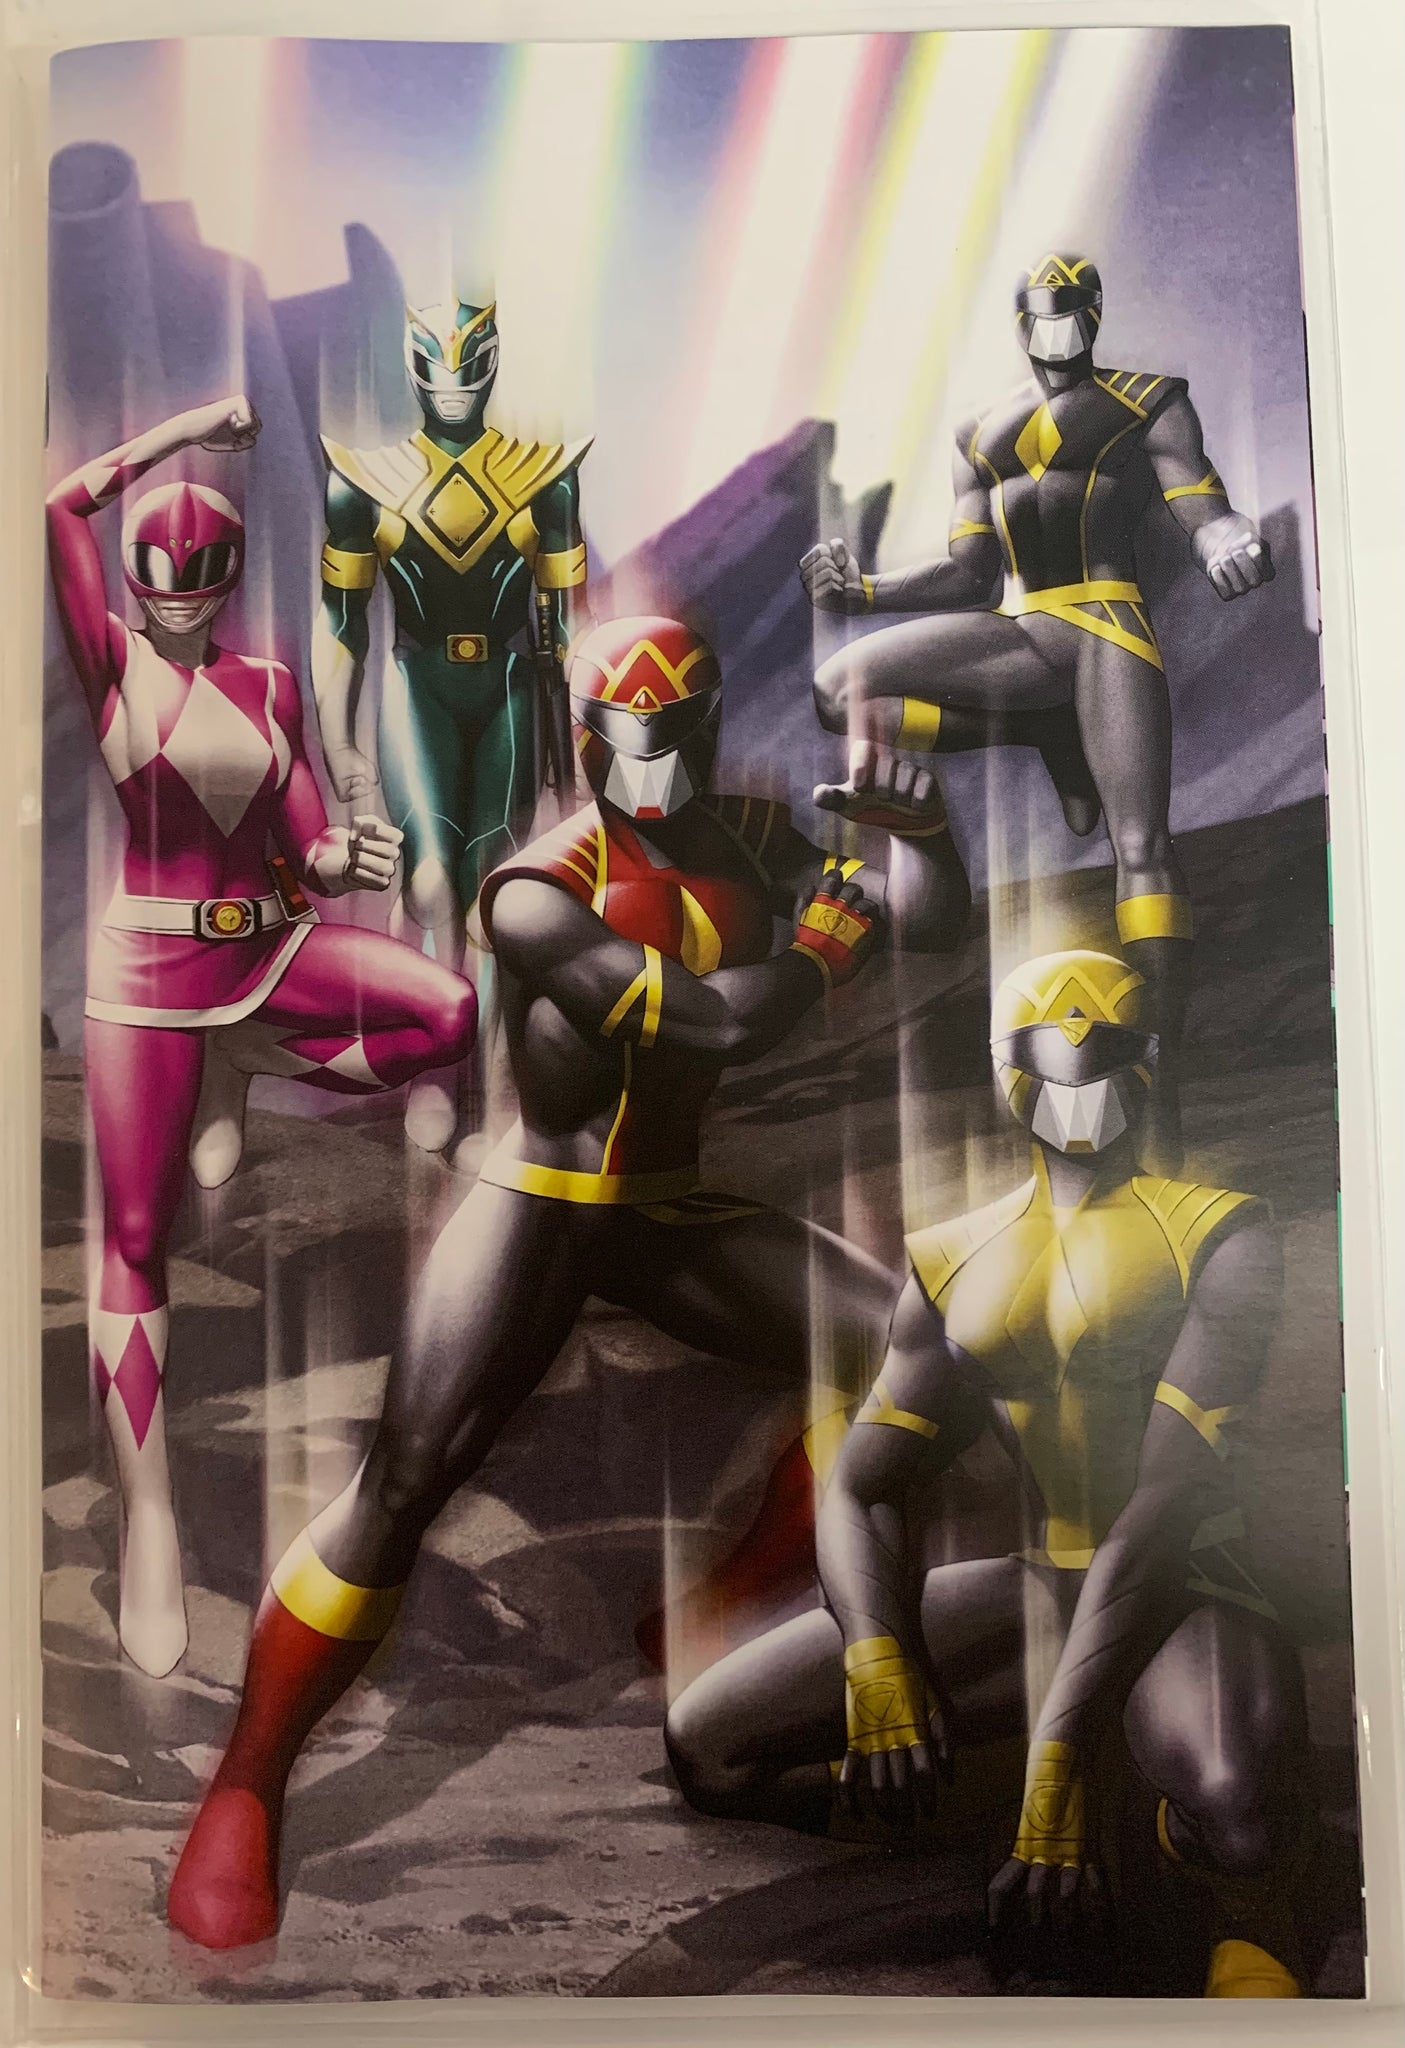 Mighty Morphin #1 and Power Rangers #1 Yoon one per store set